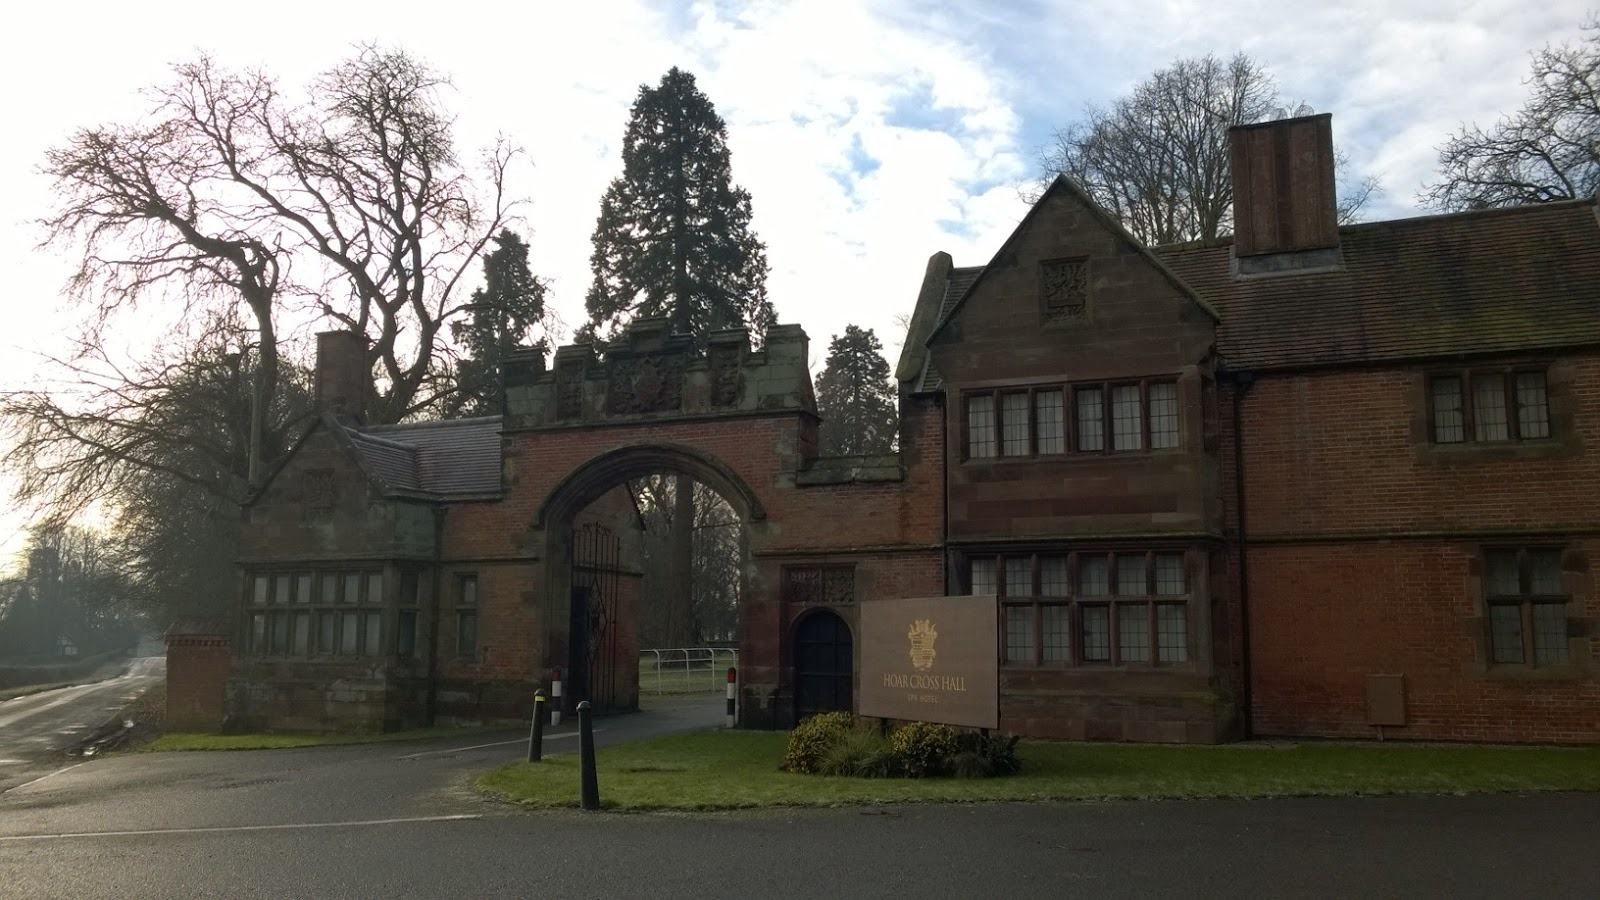 Hoar Cross Hall Spa